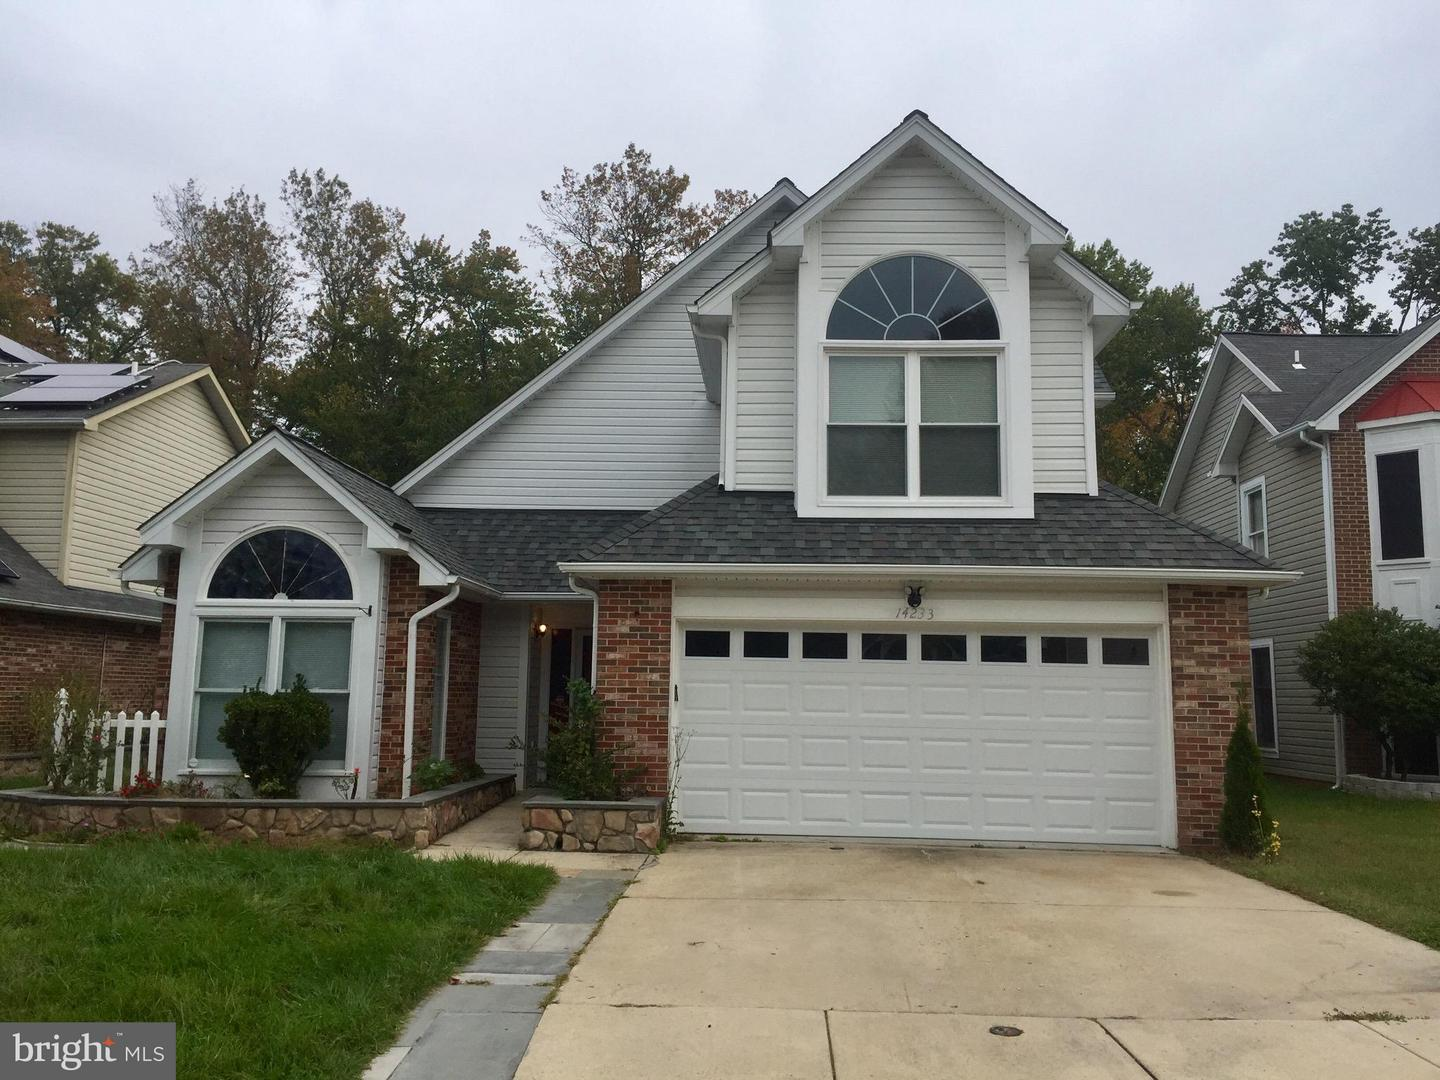 Other Residential for Rent at 14233 Greenview Dr Laurel, Maryland 20708 United States